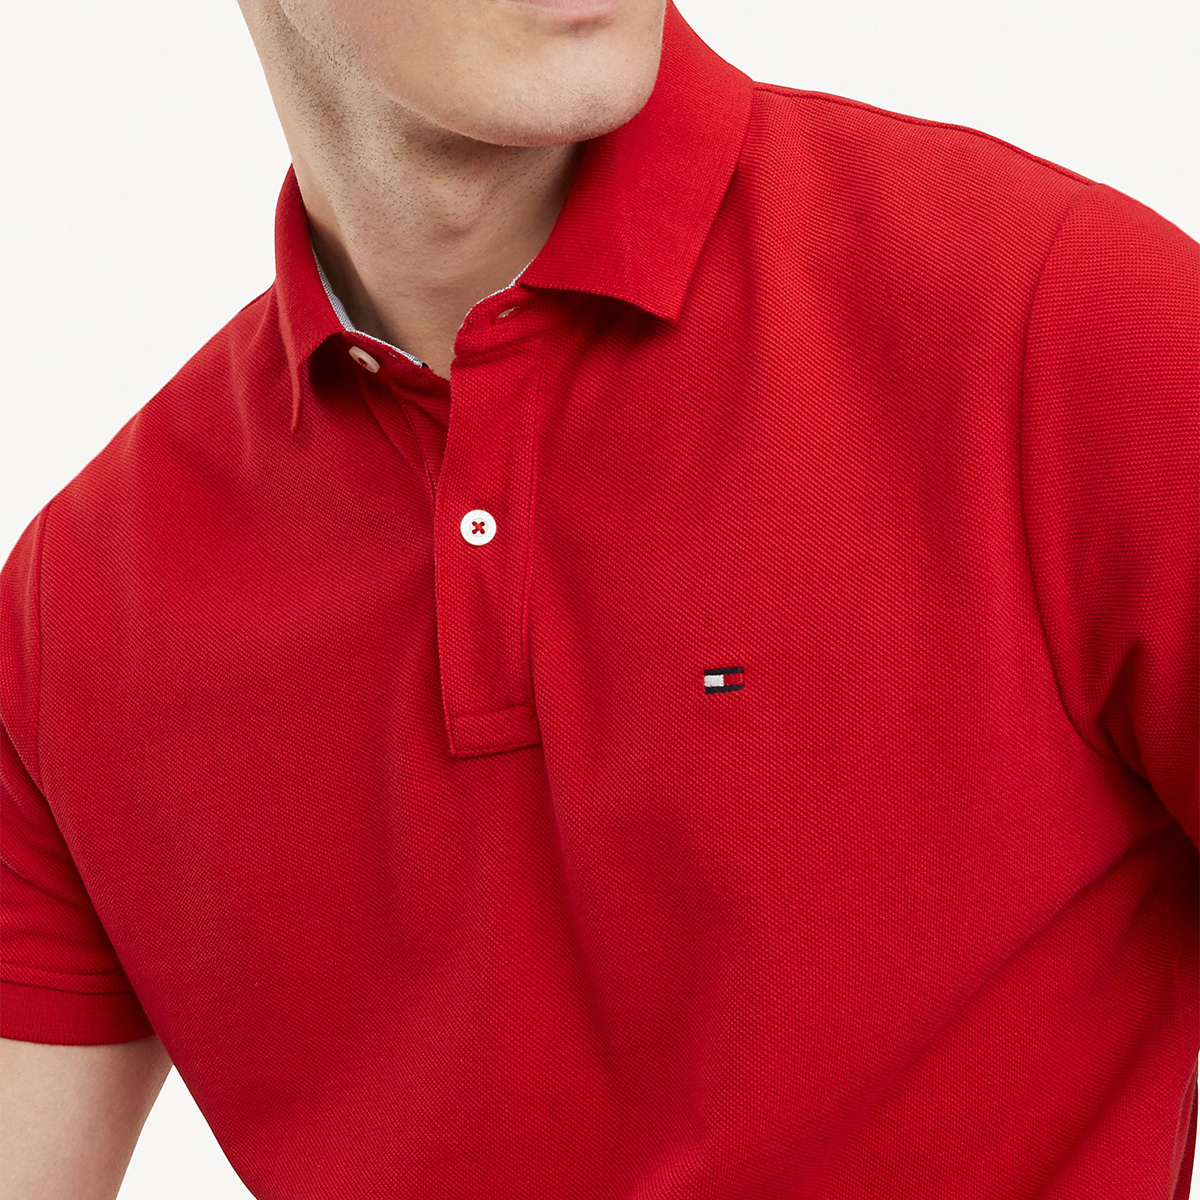 ao-polo-tommy-hilfiger-regular-fit-29